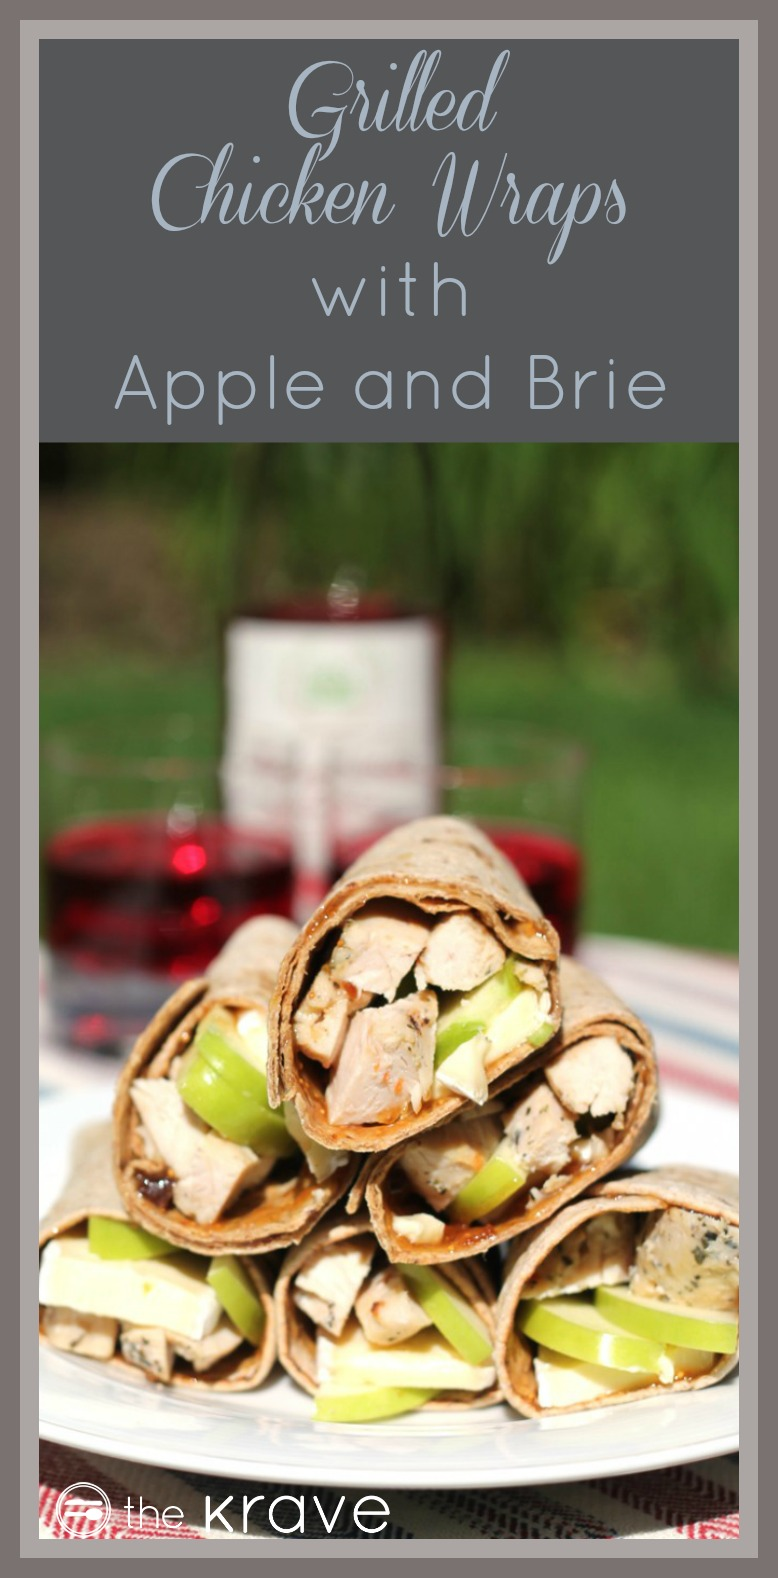 grilled-chicken-wraps-apple-brie-thekrave